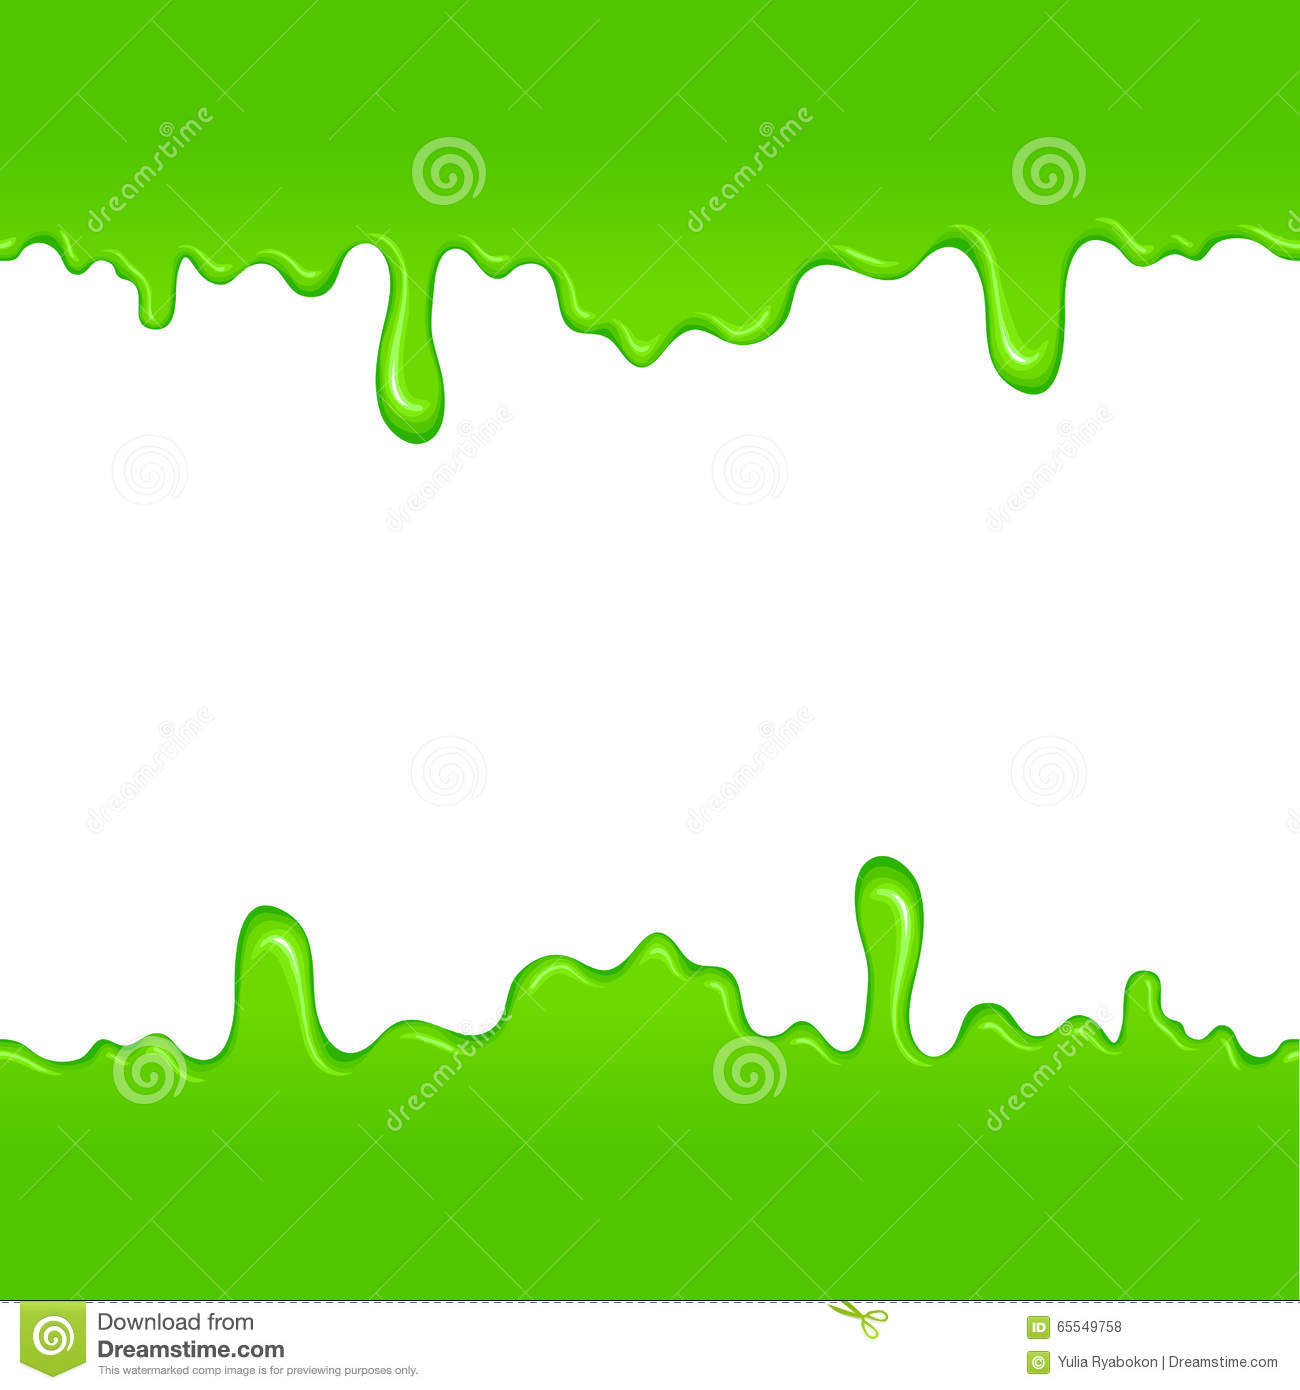 Green Slime Pattern Stock Vector Illustration Of Blob 65549758